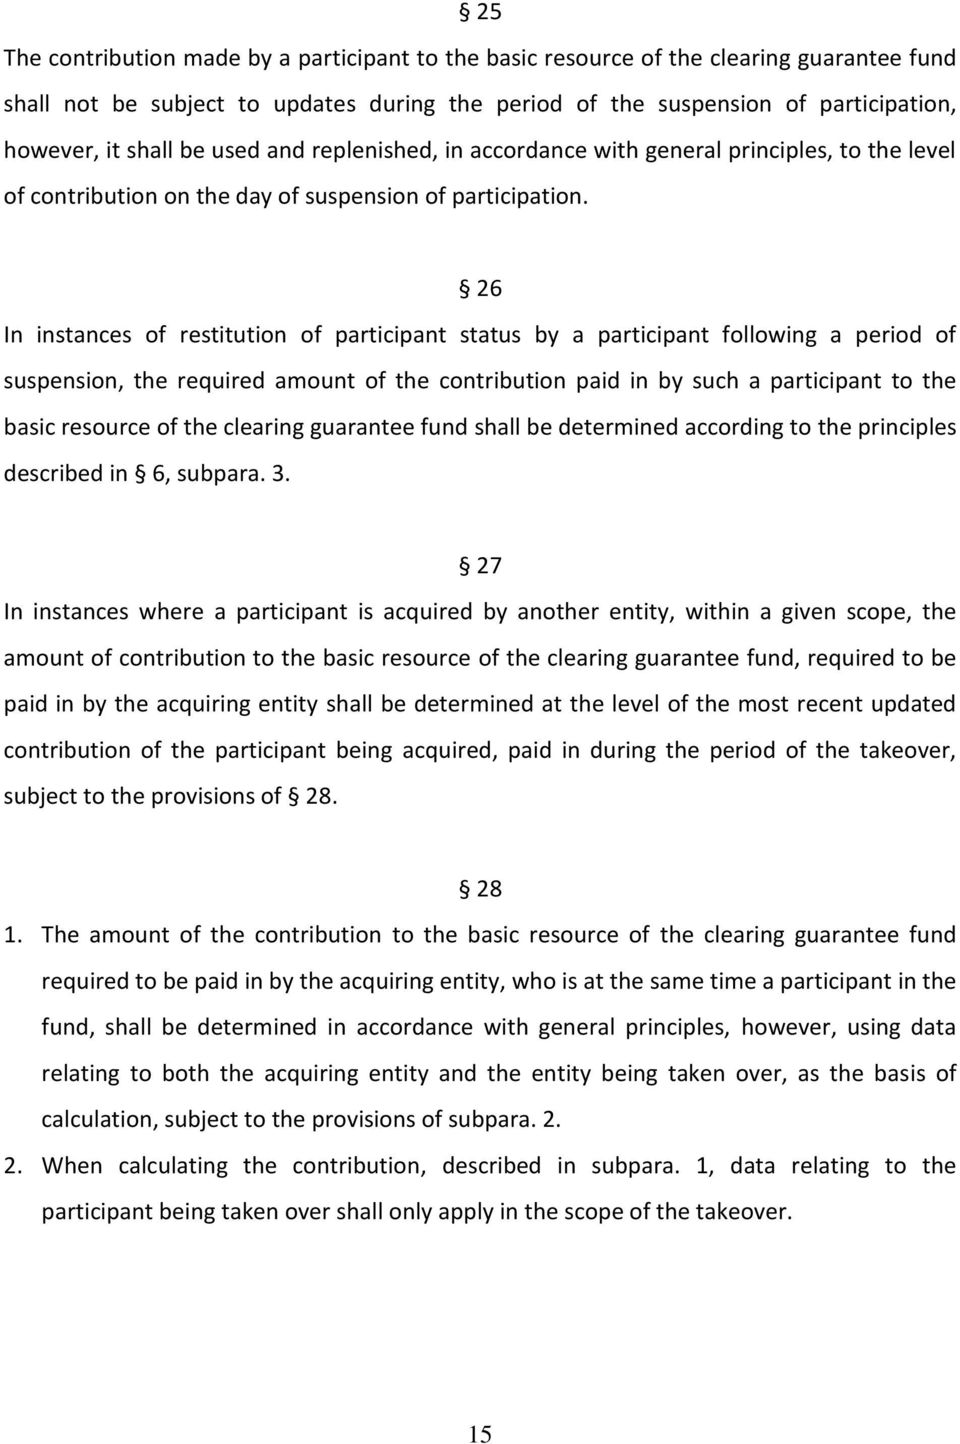 26 In instances of restitution of participant status by a participant following a period of suspension, the required amount of the contribution paid in by such a participant to the basic resource of